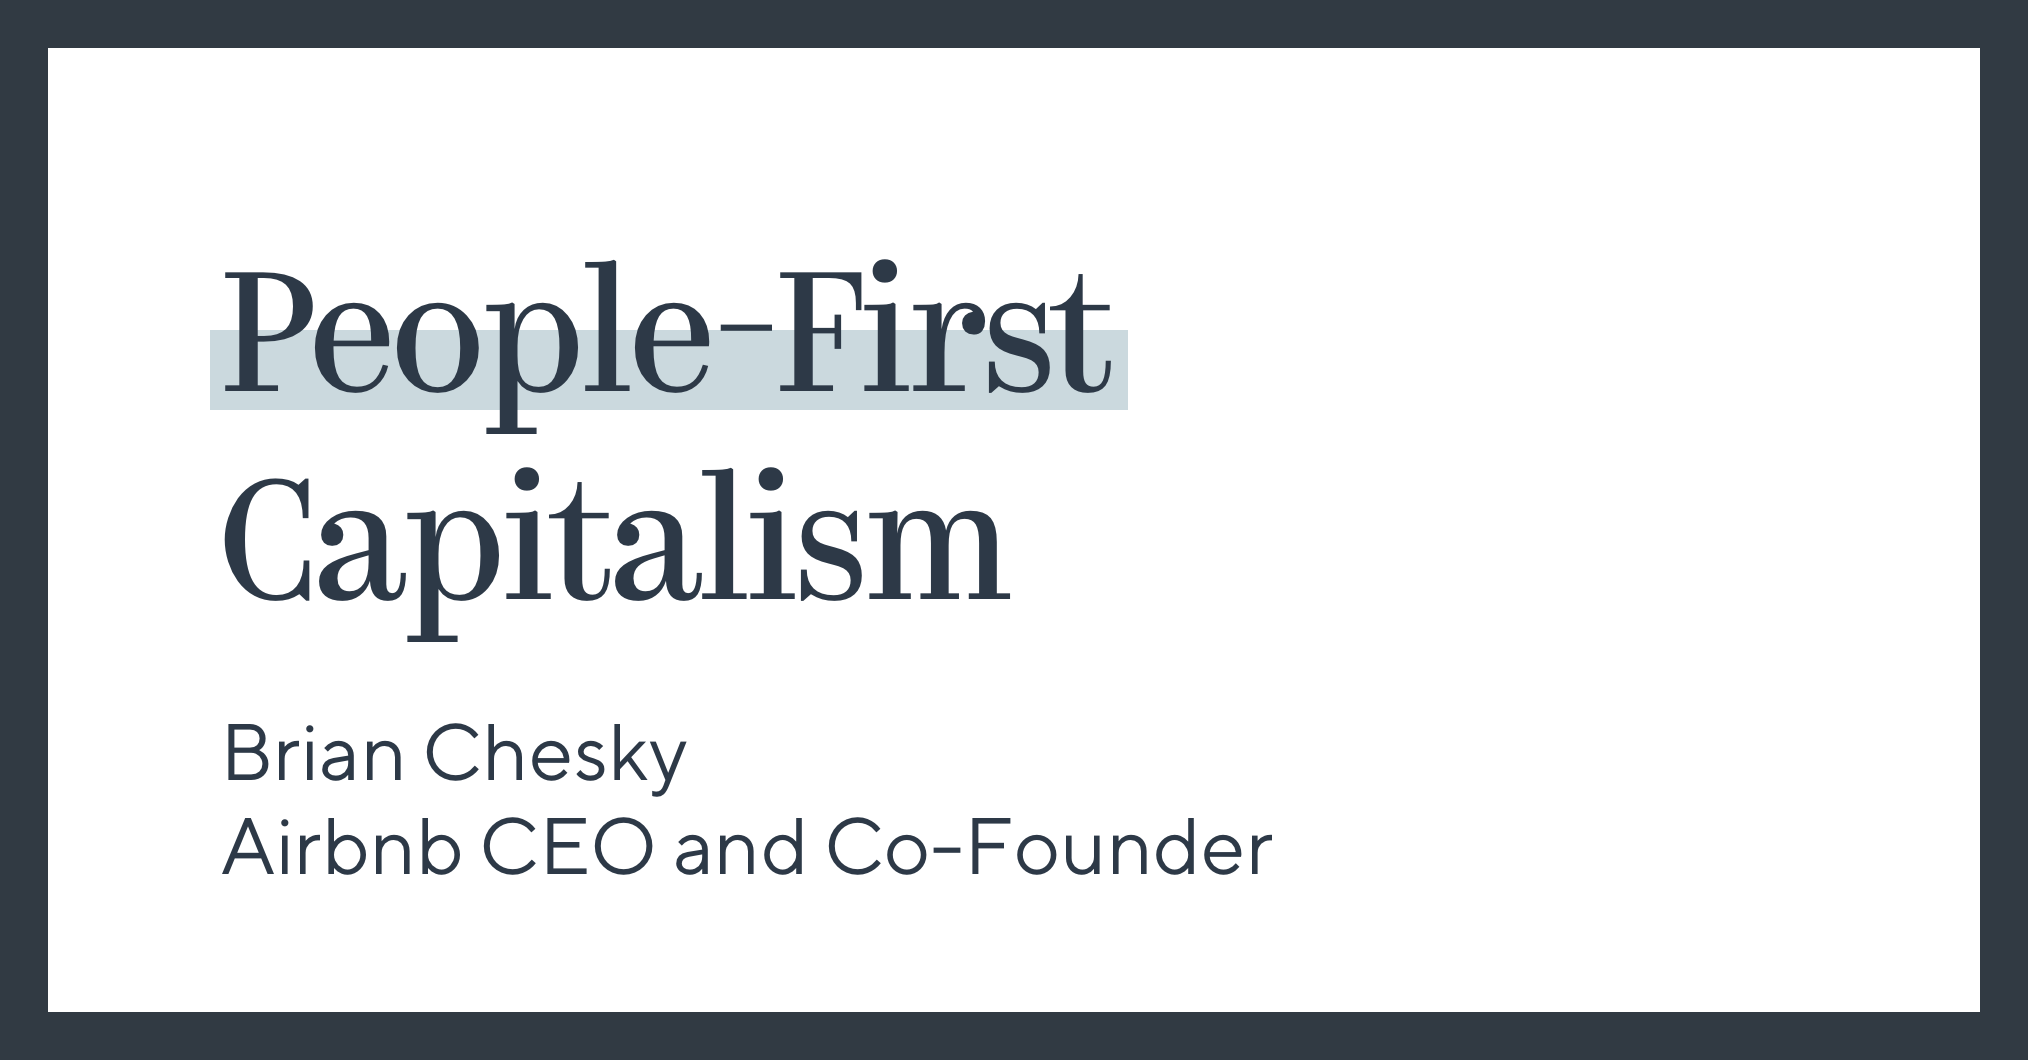 People-First Capitalism